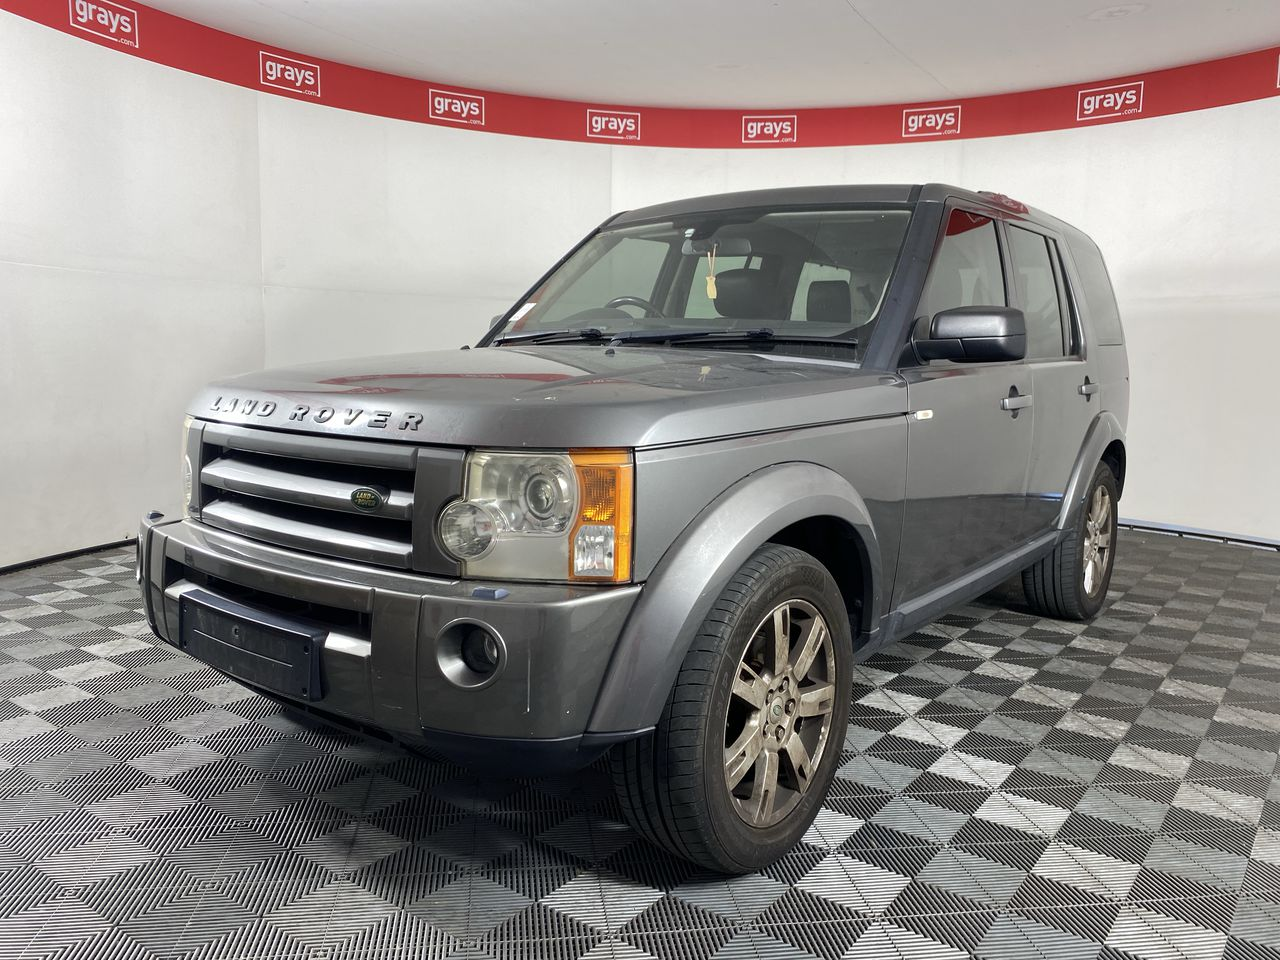 2009 Land Rover Discovery 3 SE Series III Turbo Diesel Auto 7 Seats Wagon